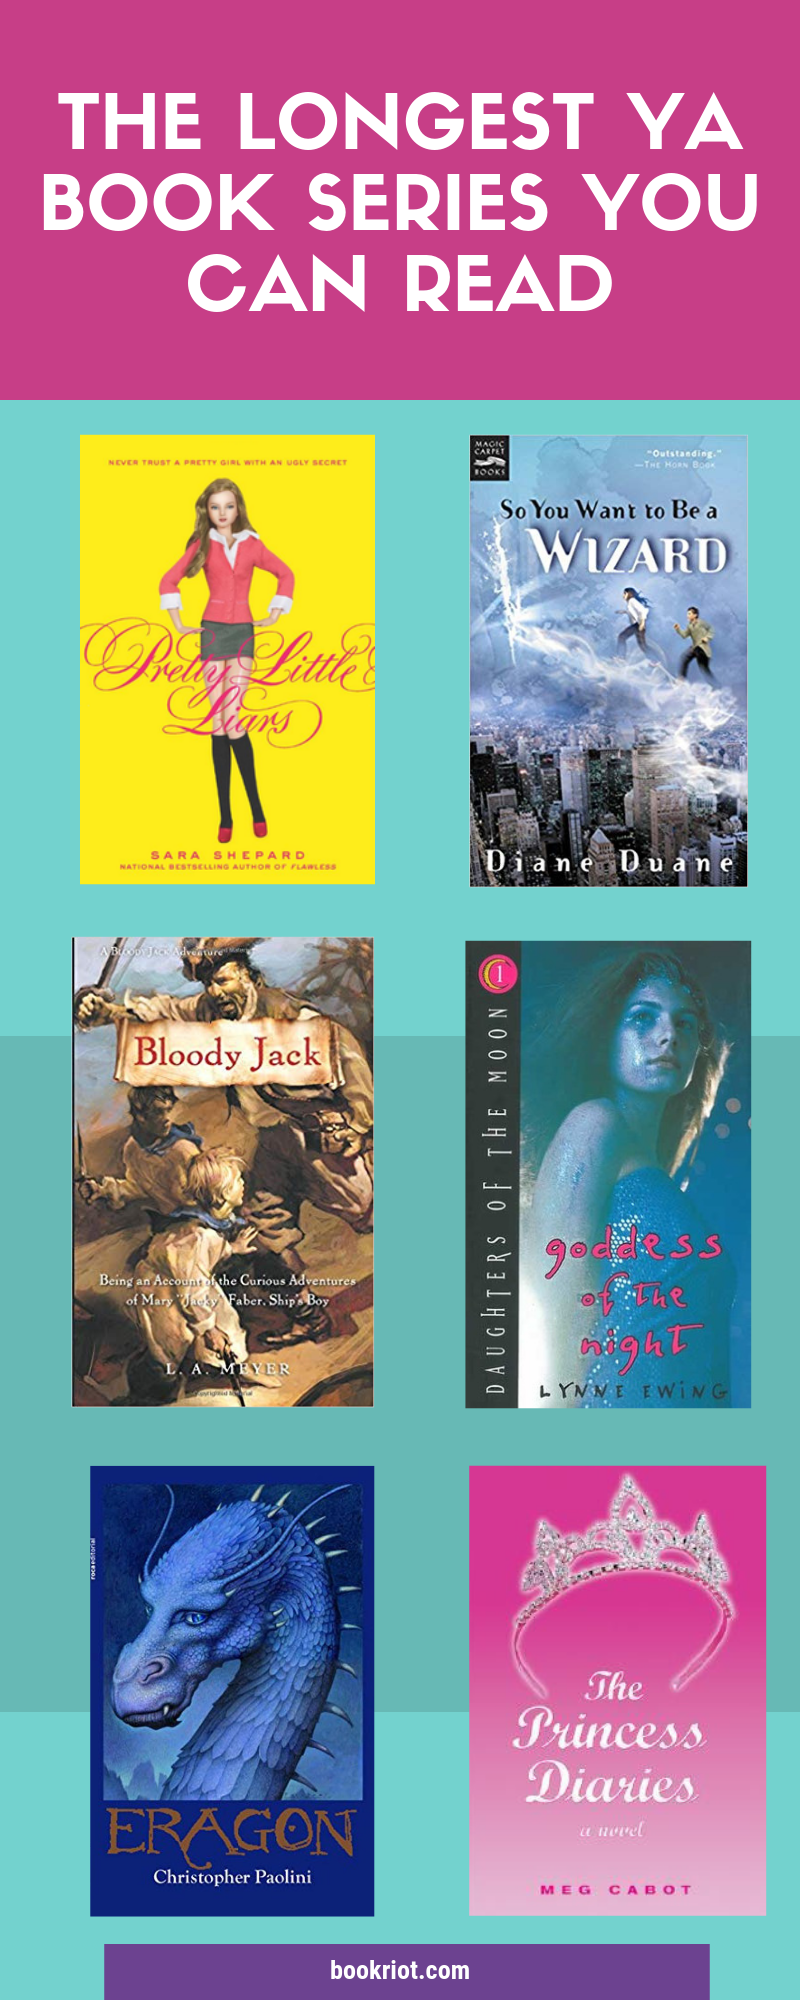 The longest YA book series you can read, both by number of volumes in the series and by number of pages in the series. book lists | YA books | YA book lists | Longest YA books | Longest YA book series | book series | long book series | long ya book series | #YALit | #YABoooks